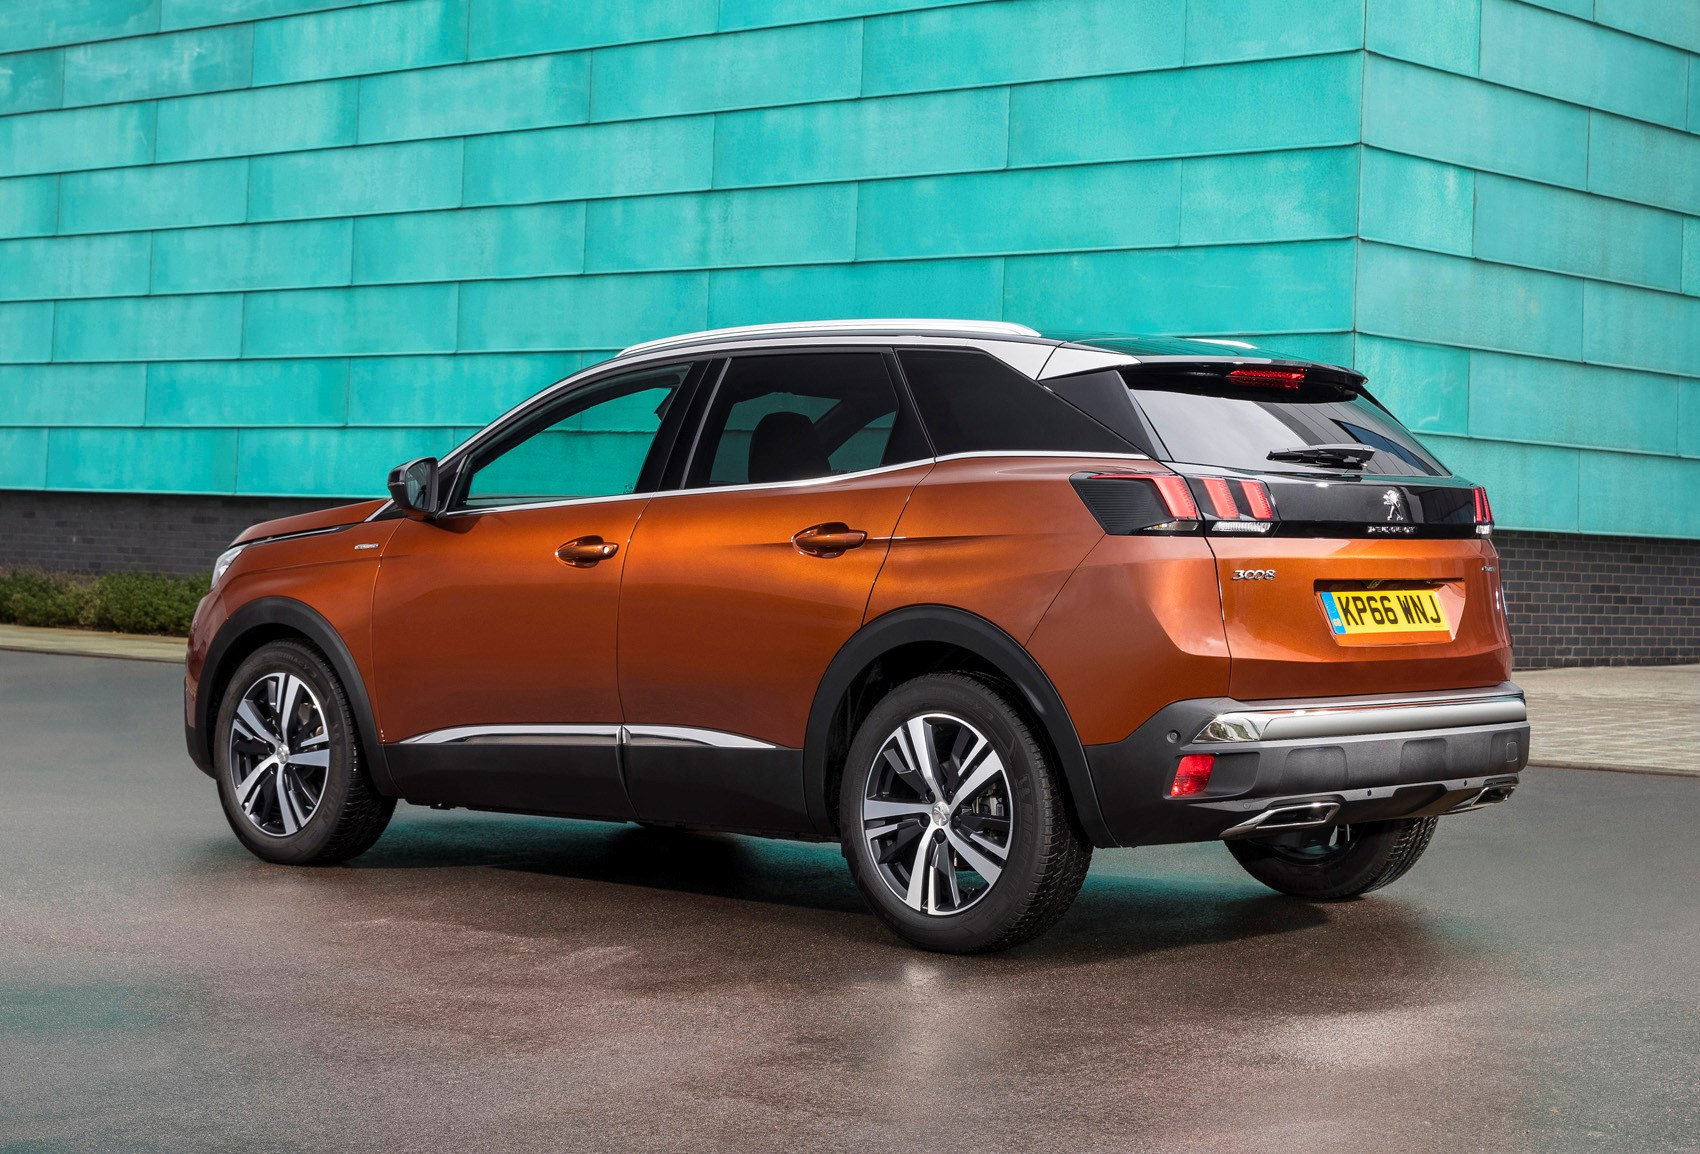 Lease A Suv >> Peugeot 3008 SUV (2016 - ) Photos | Parkers